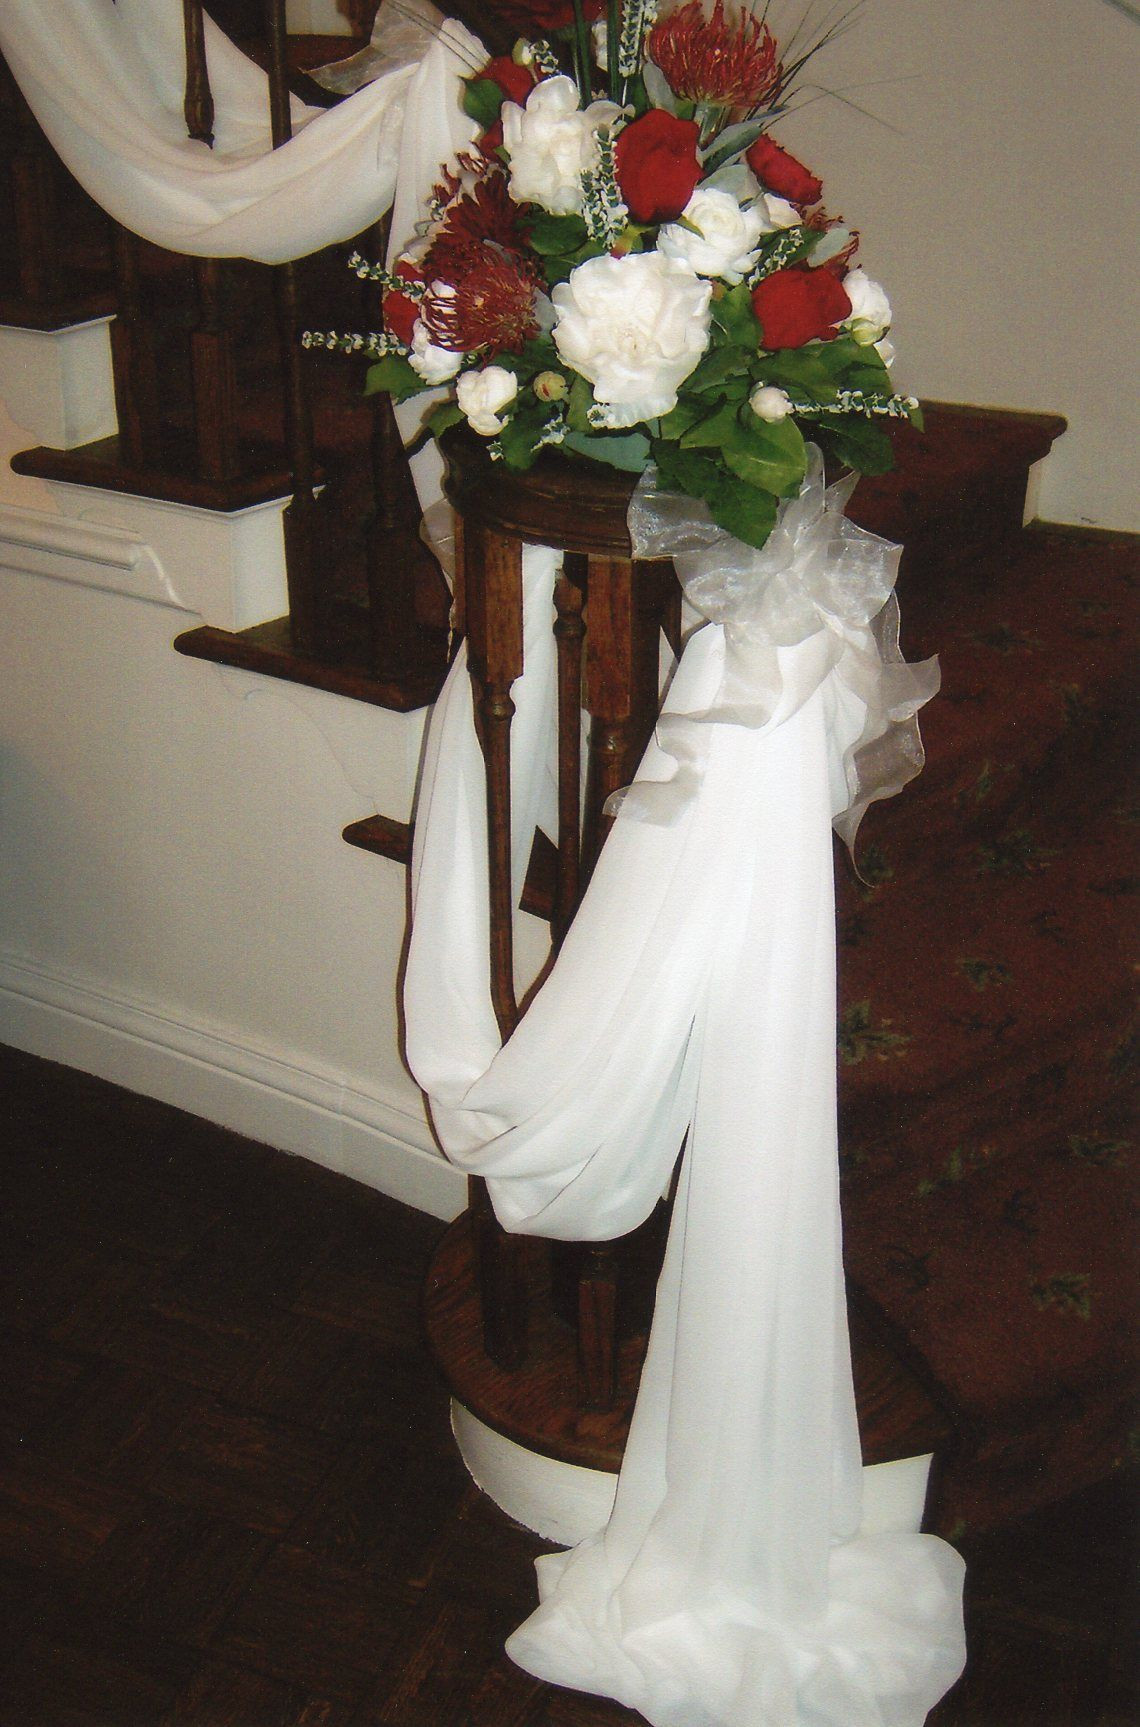 christian tortu vase of wedding banister weddings pinterest banisters and weddings in wedding banister